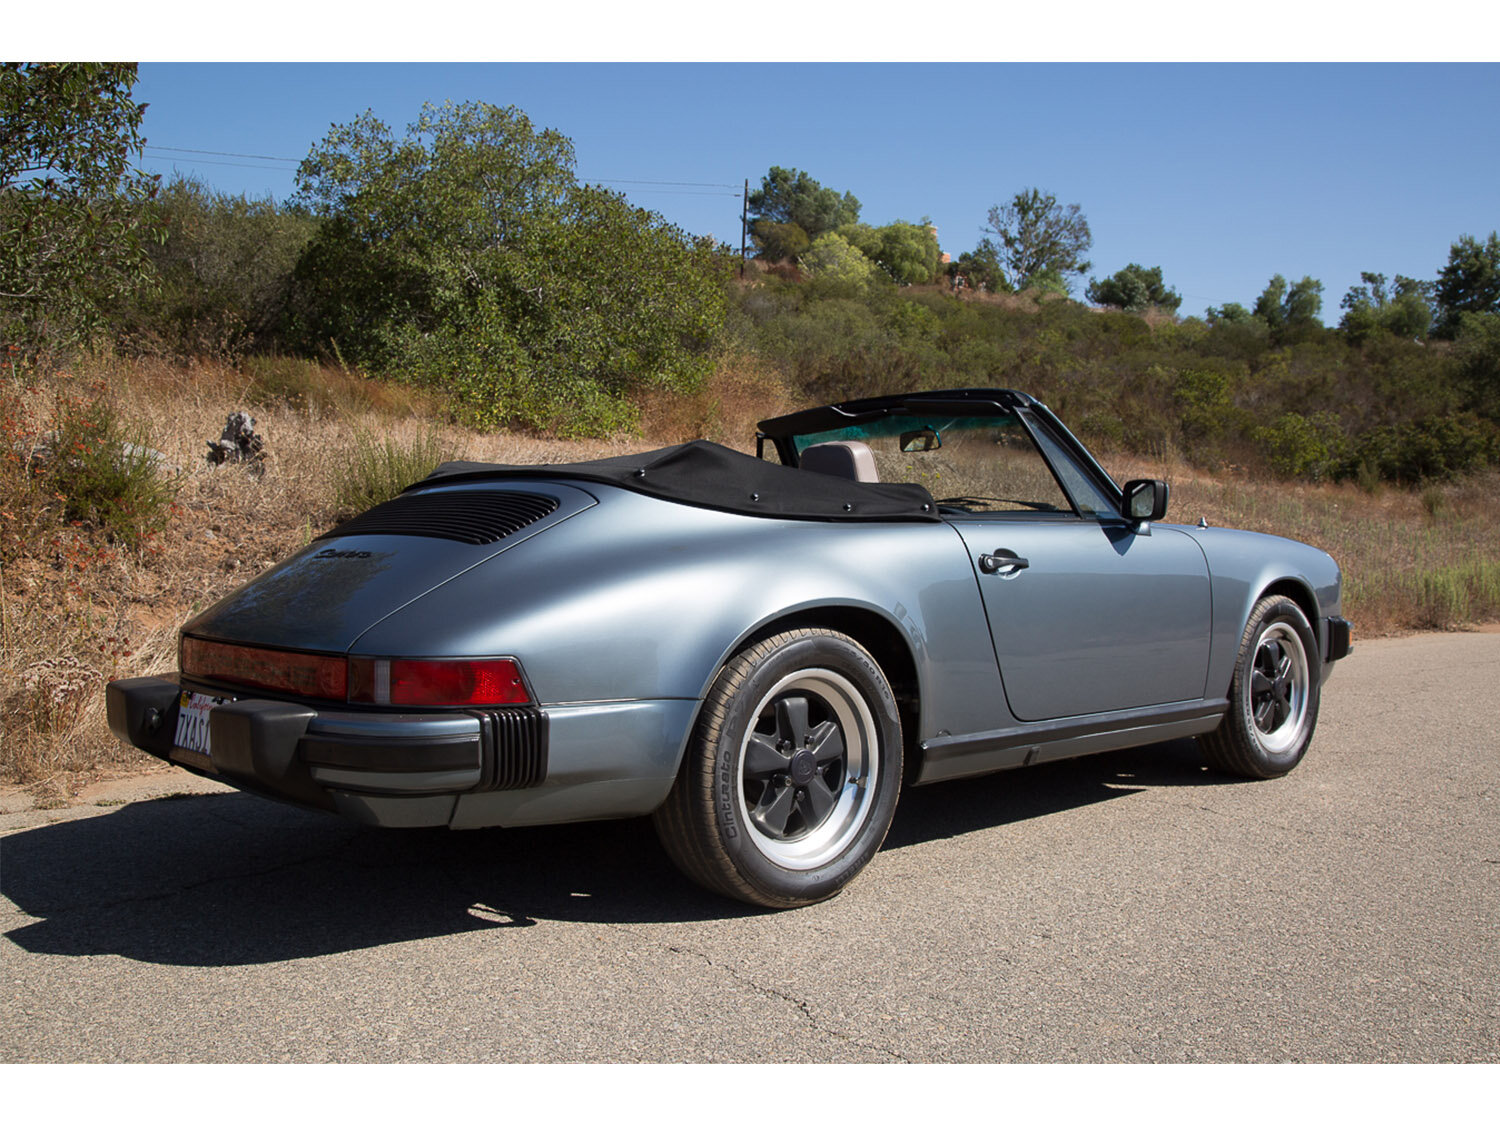 1984-carrera-cabriolet-slate-blue-911-sc-for-sale-makellos-classics_0001s_0000s_0028_1B7A6609.jpg